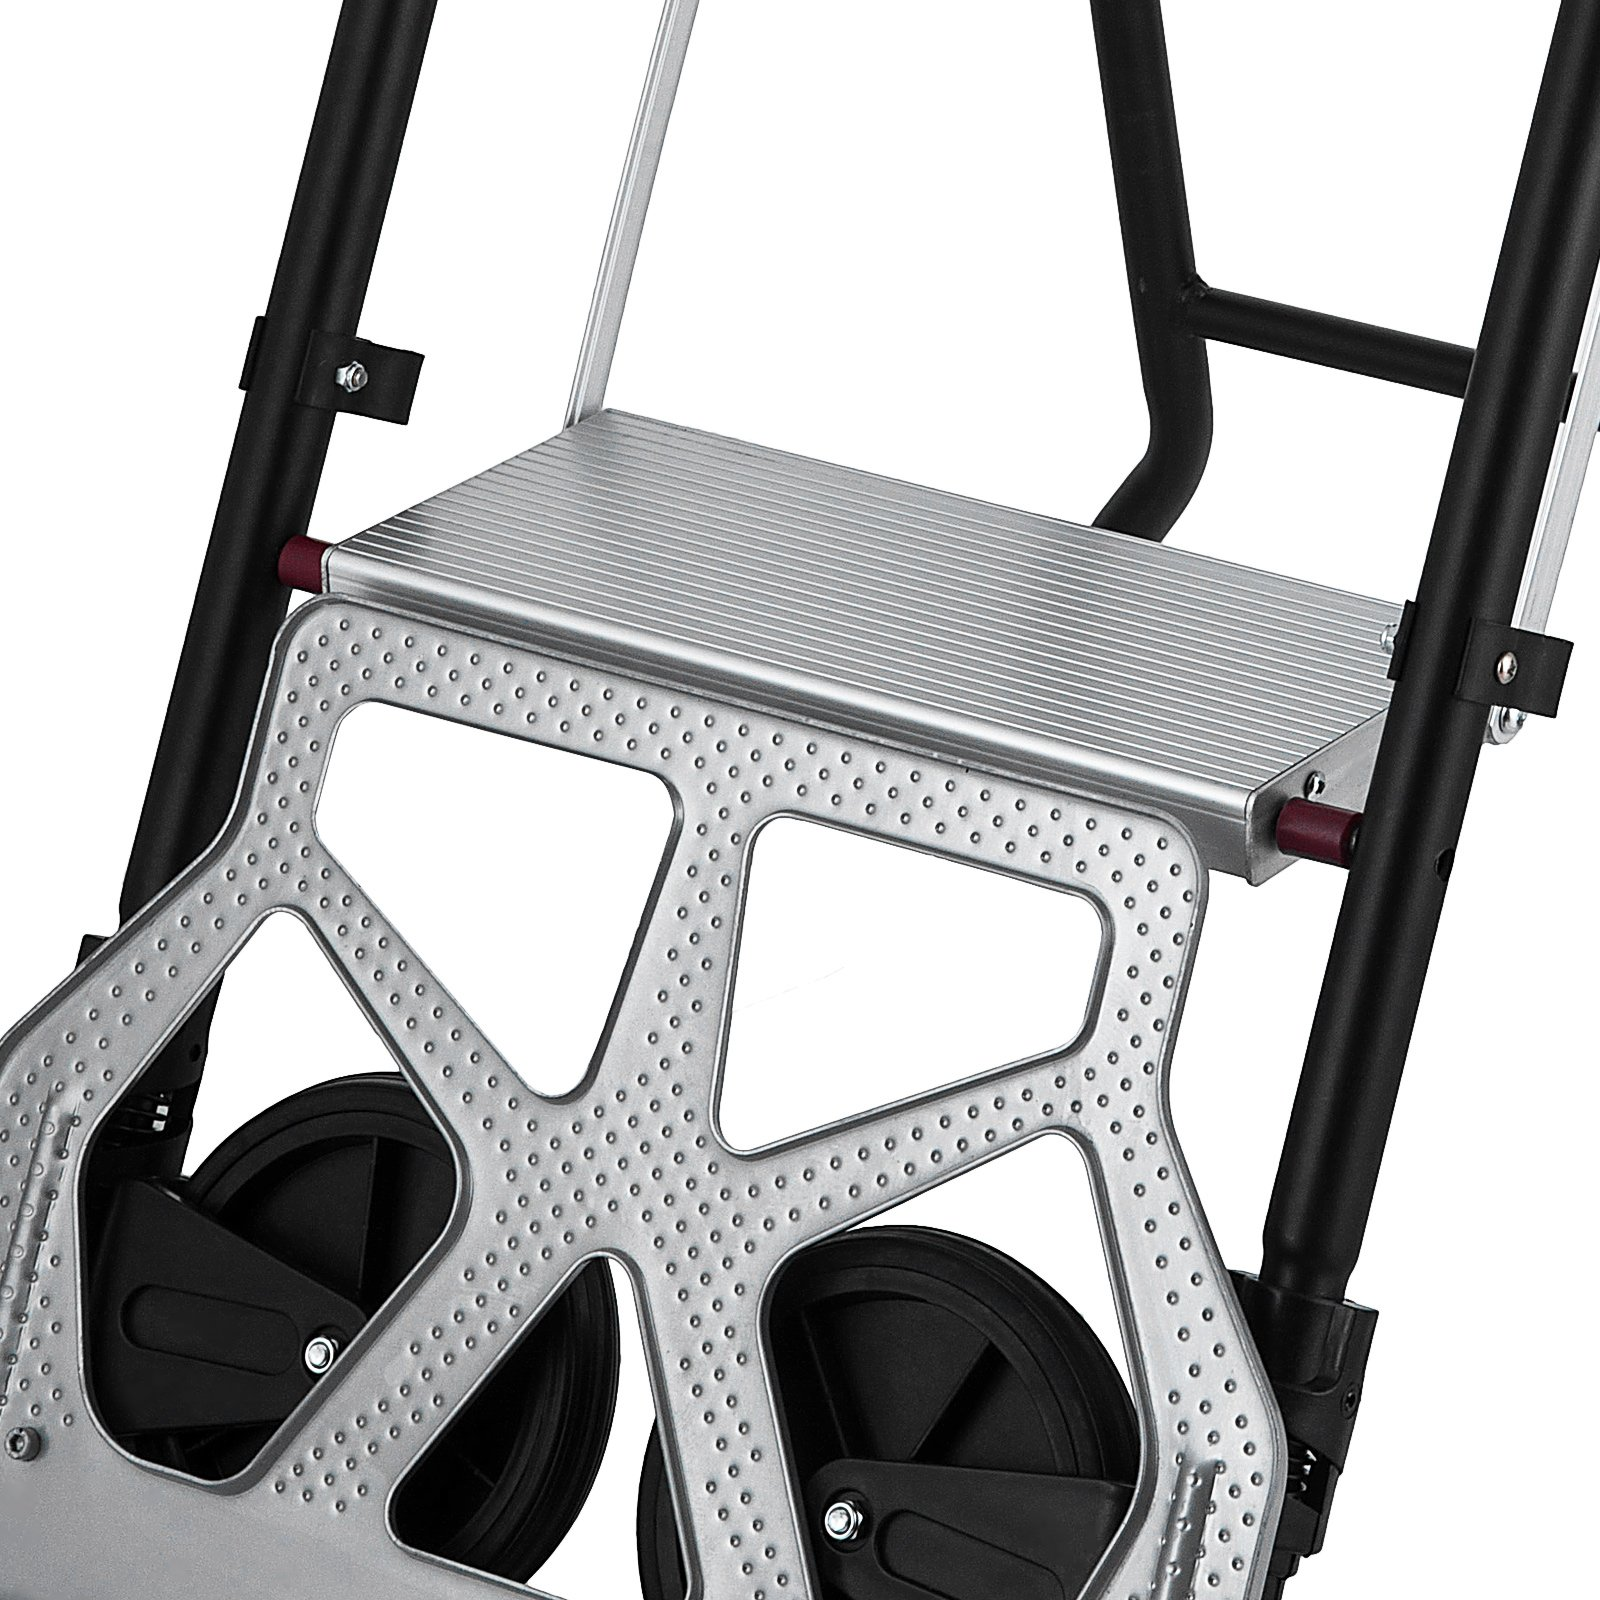 OrangeA 3-Steps Ladder Cart 2-in-1 Convertible Step Ladder Folding Hand Truck with Trolley by OrangeA (Image #6)